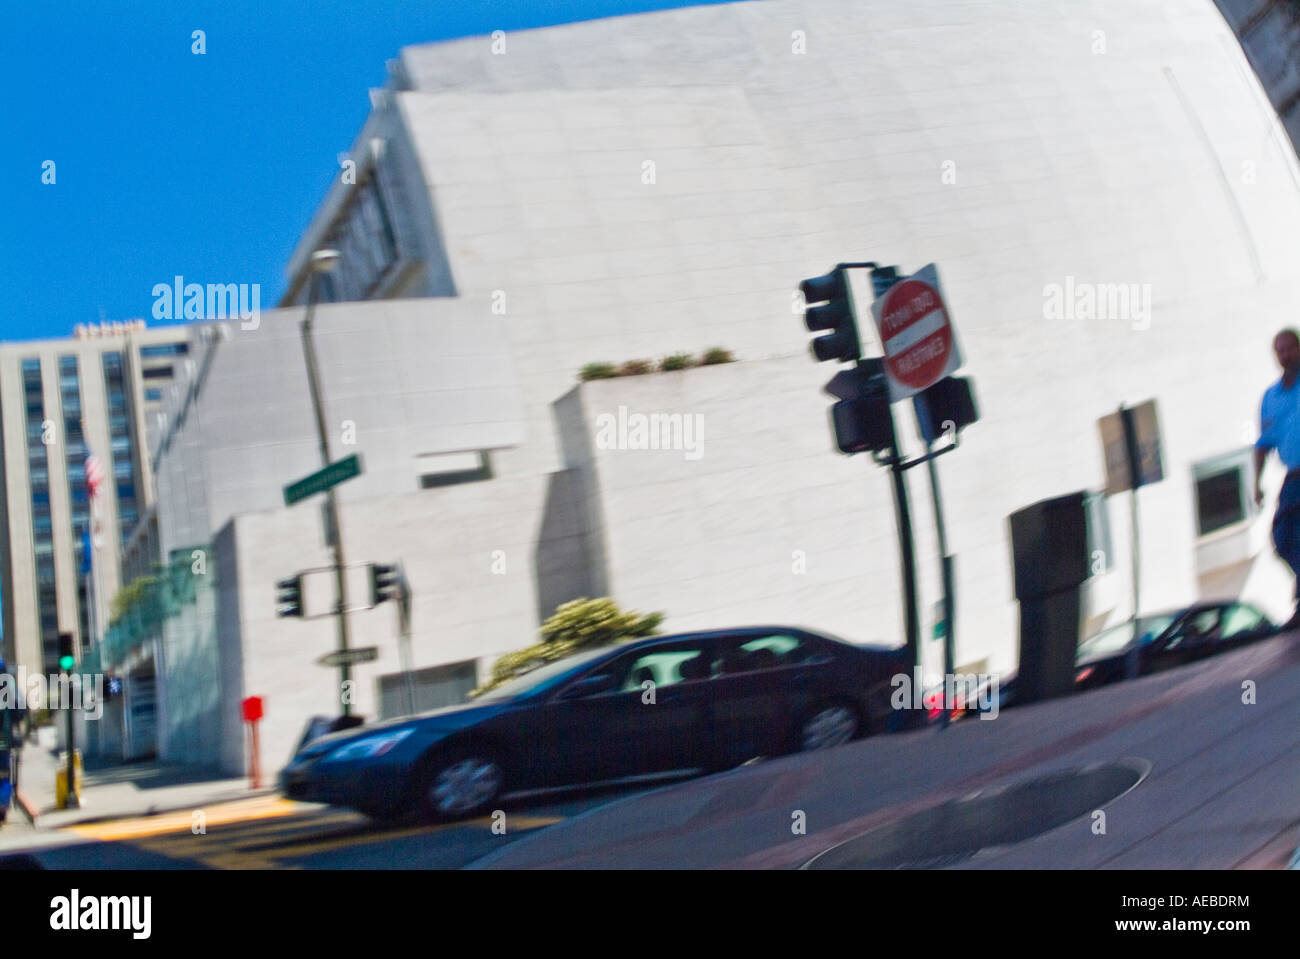 Blurred reflection of urban building in car window Stock Photo